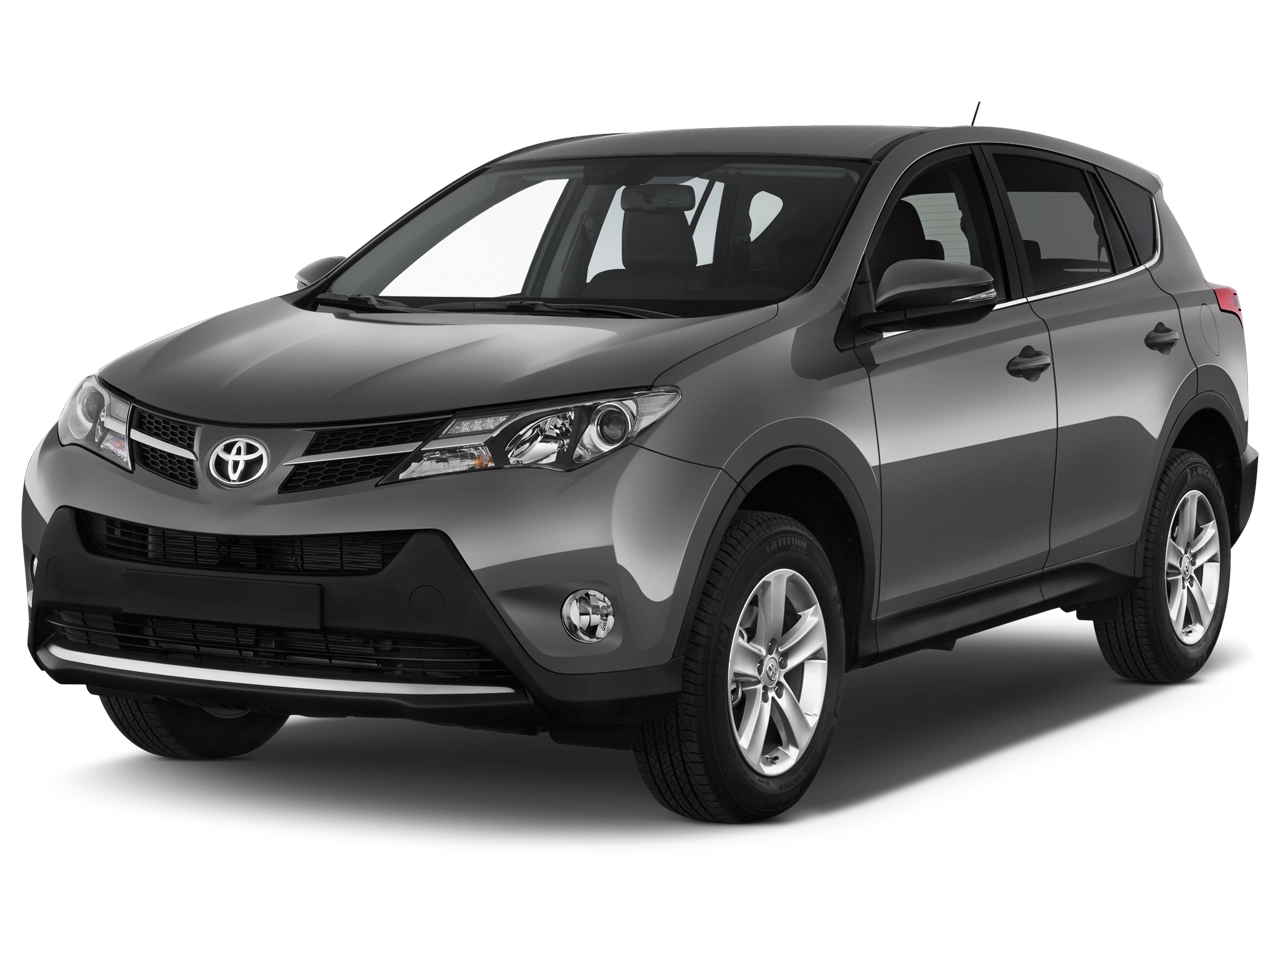 used one owner 2014 toyota rav4 le near woburn ma. Black Bedroom Furniture Sets. Home Design Ideas